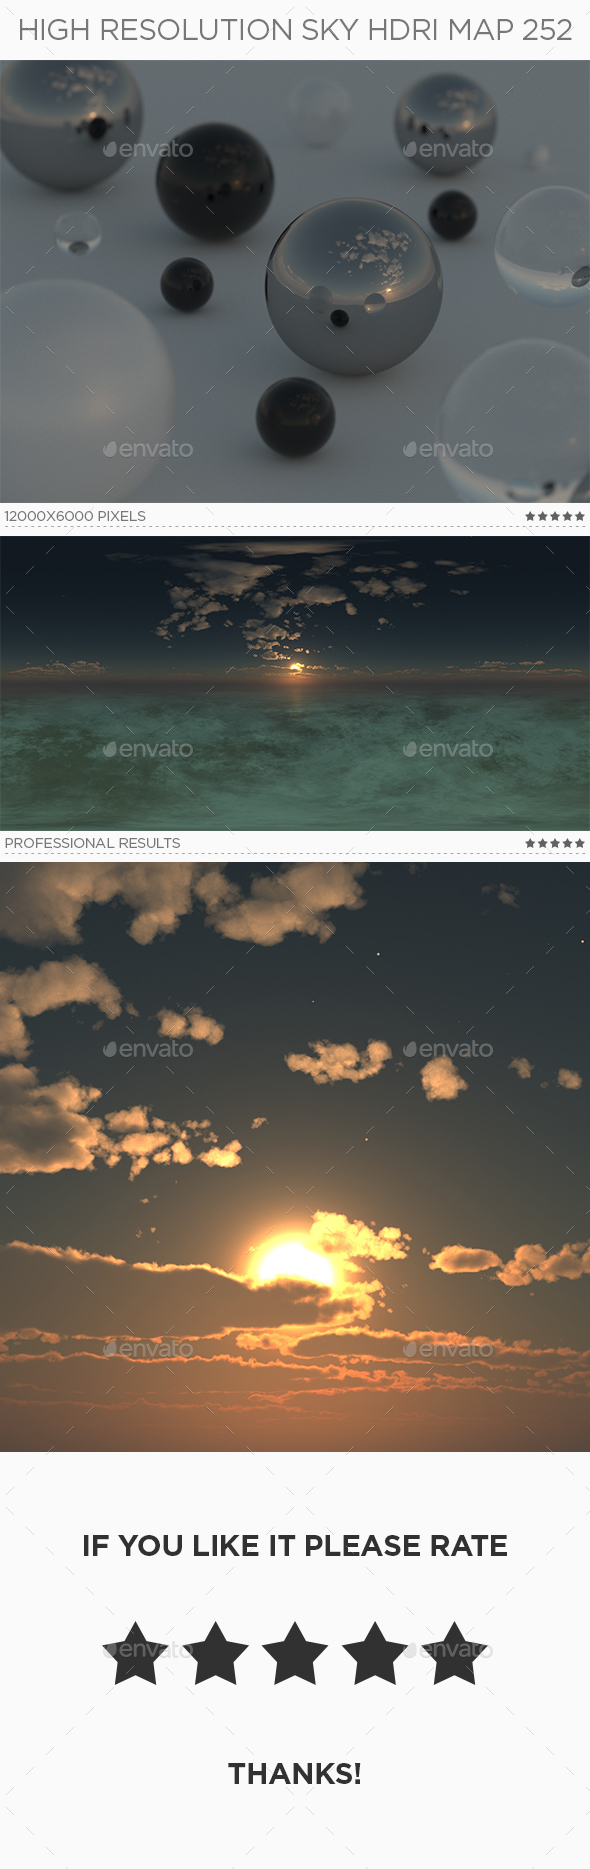 High Resolution Sky HDRi Map 252 - 3DOcean Item for Sale